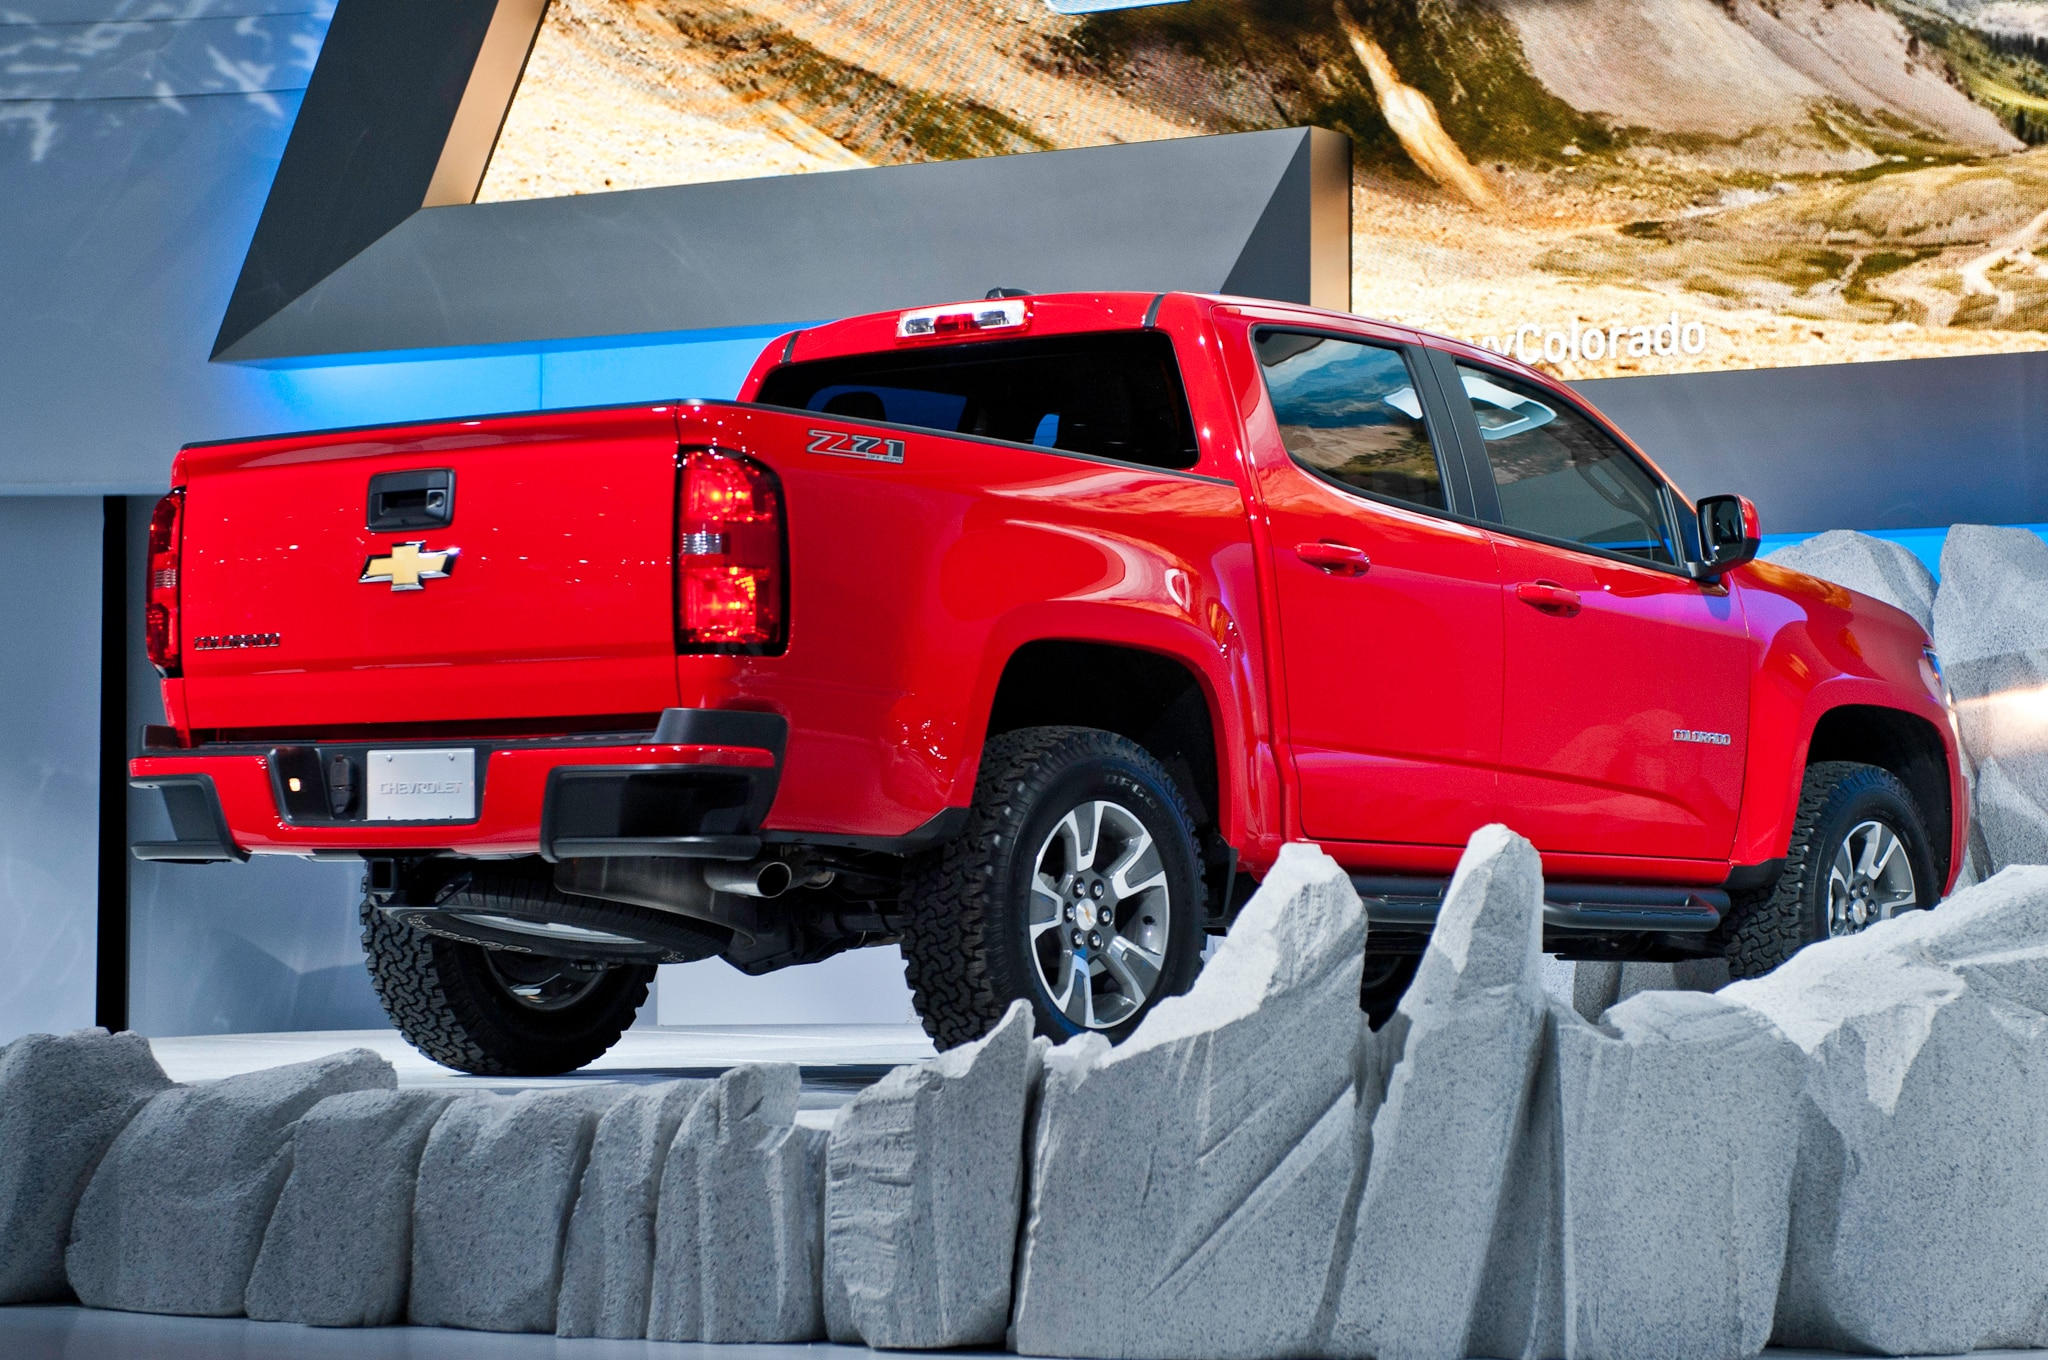 2015 Chevrolet Colorado rear view